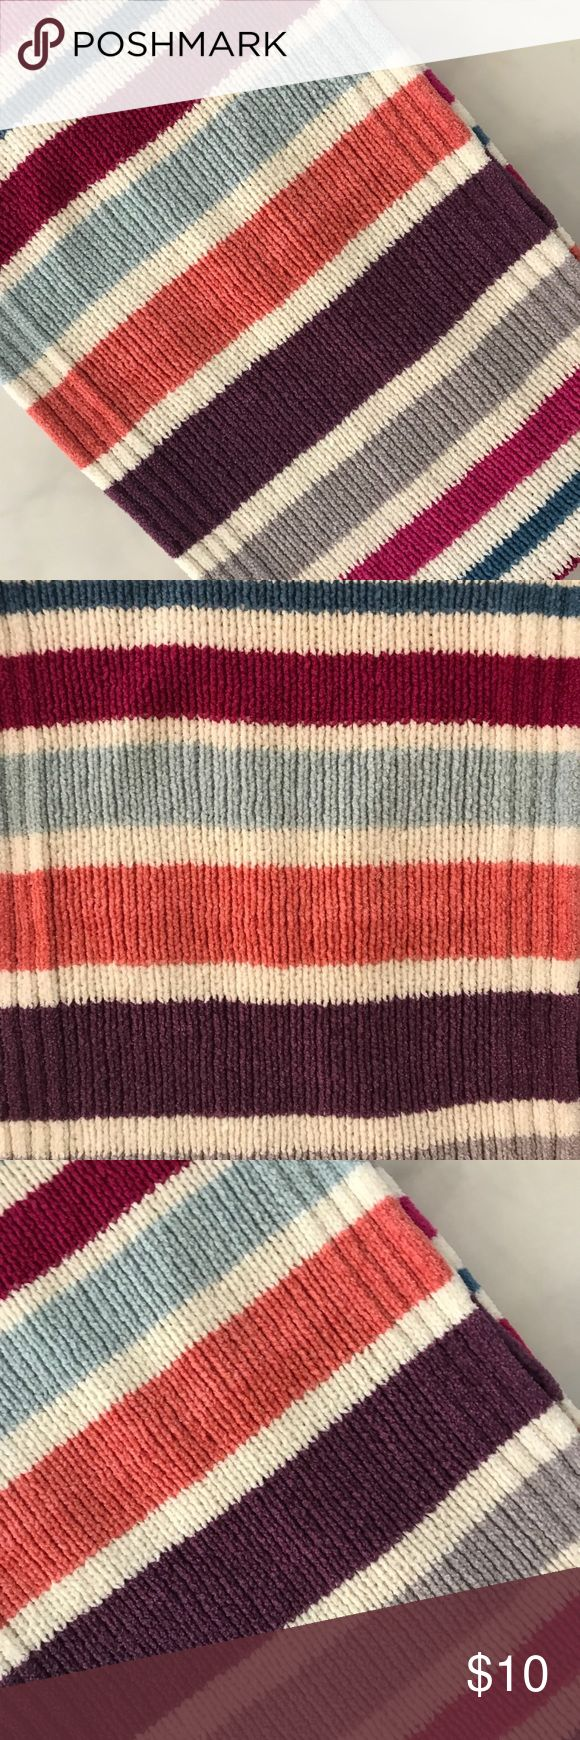 Multi Colored Striped Scarf This is a beautiful multi colored scarf from Macys. Perfect for the colder weather and with a sweater, jeans and boots. Very cute and very pretty! Macy's Accessories Scarves & Wraps